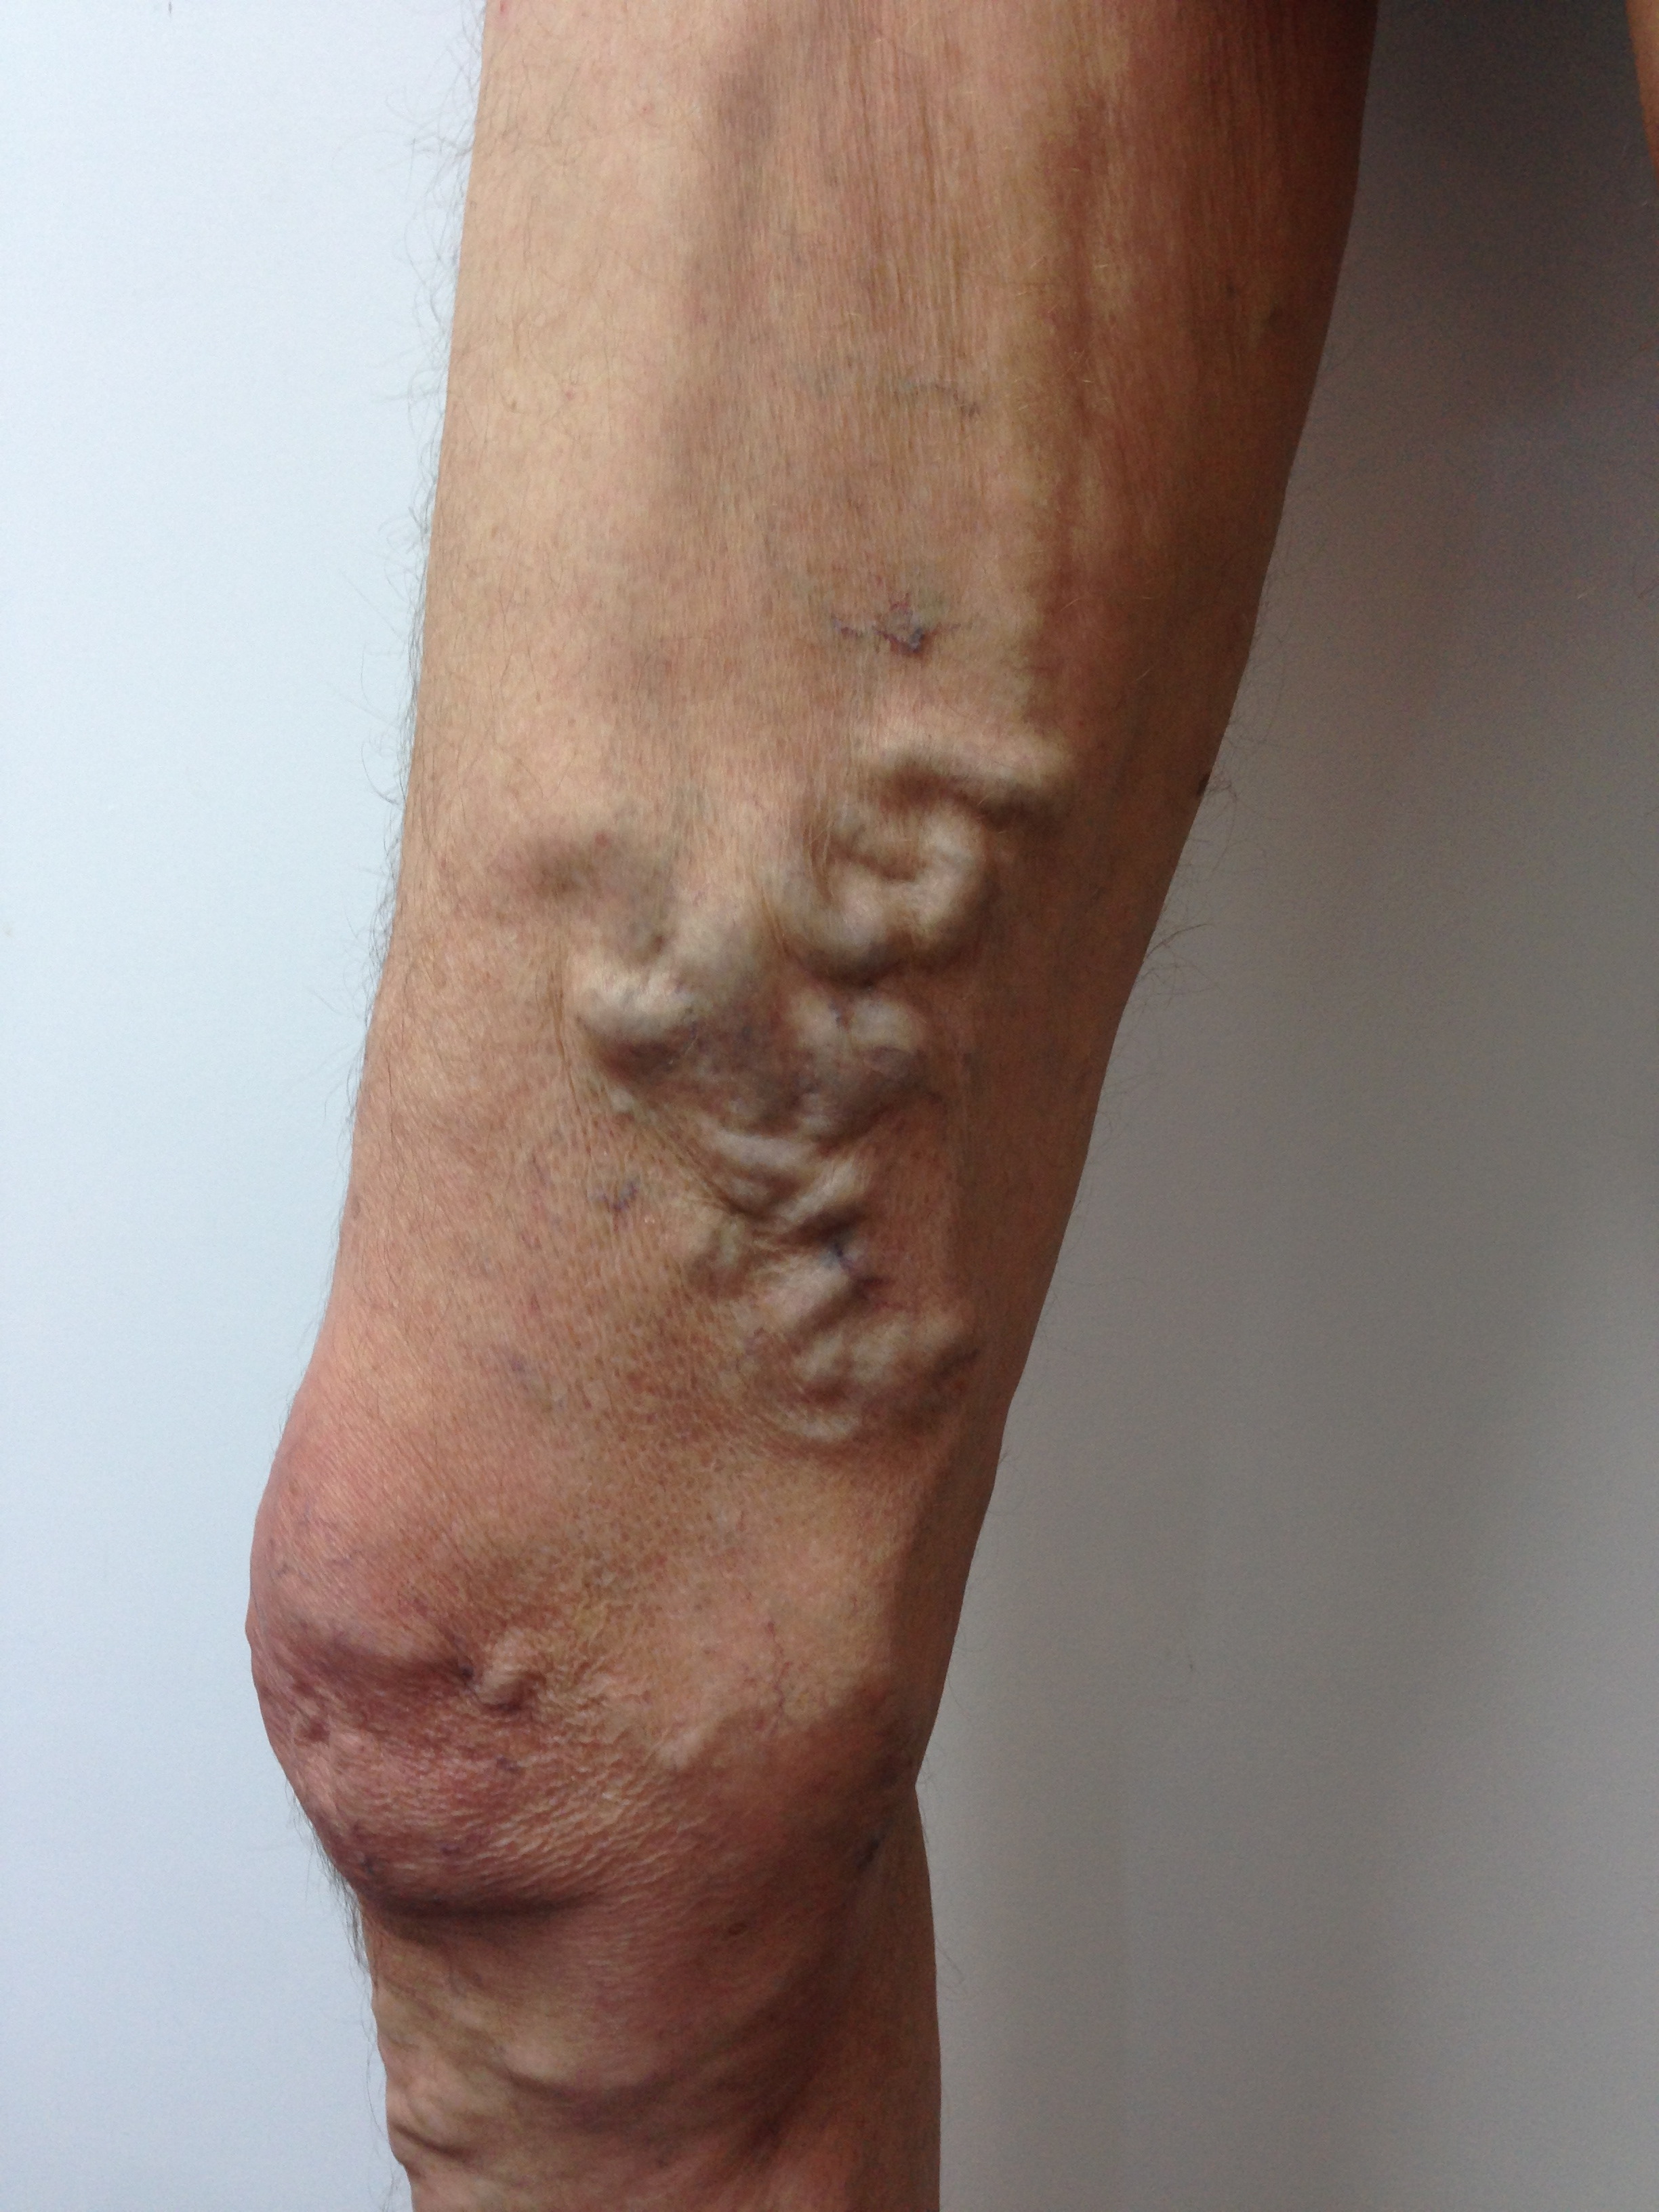 Patient presented with severe Varicose Veins associated with extensive GSV incompetence. Male, 73 years.